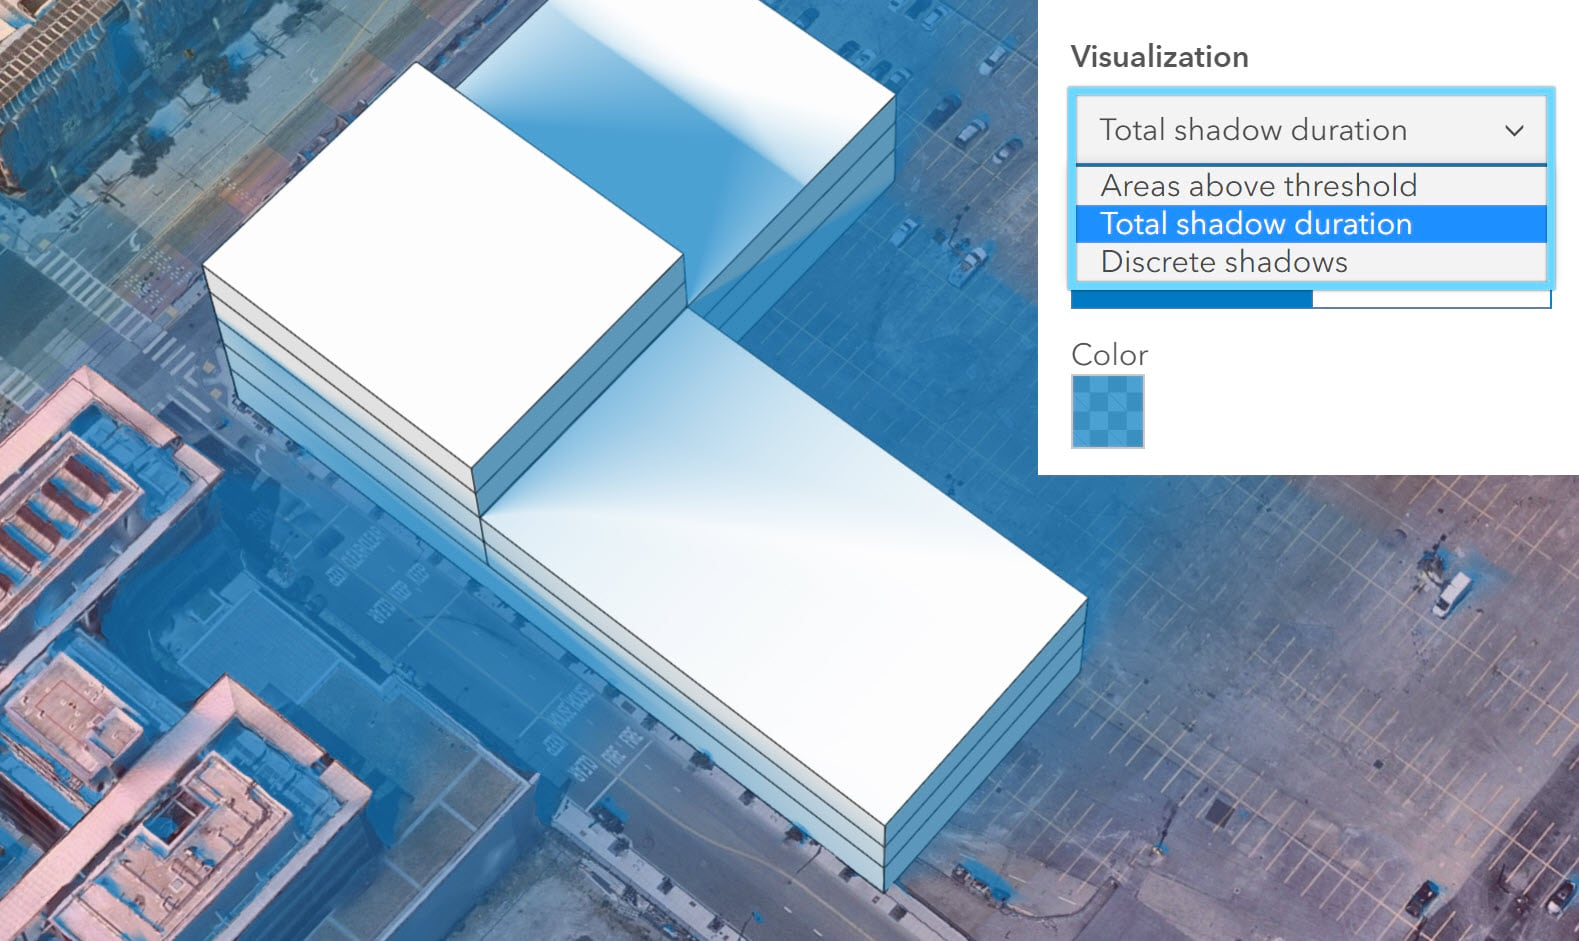 two additional visualization modes